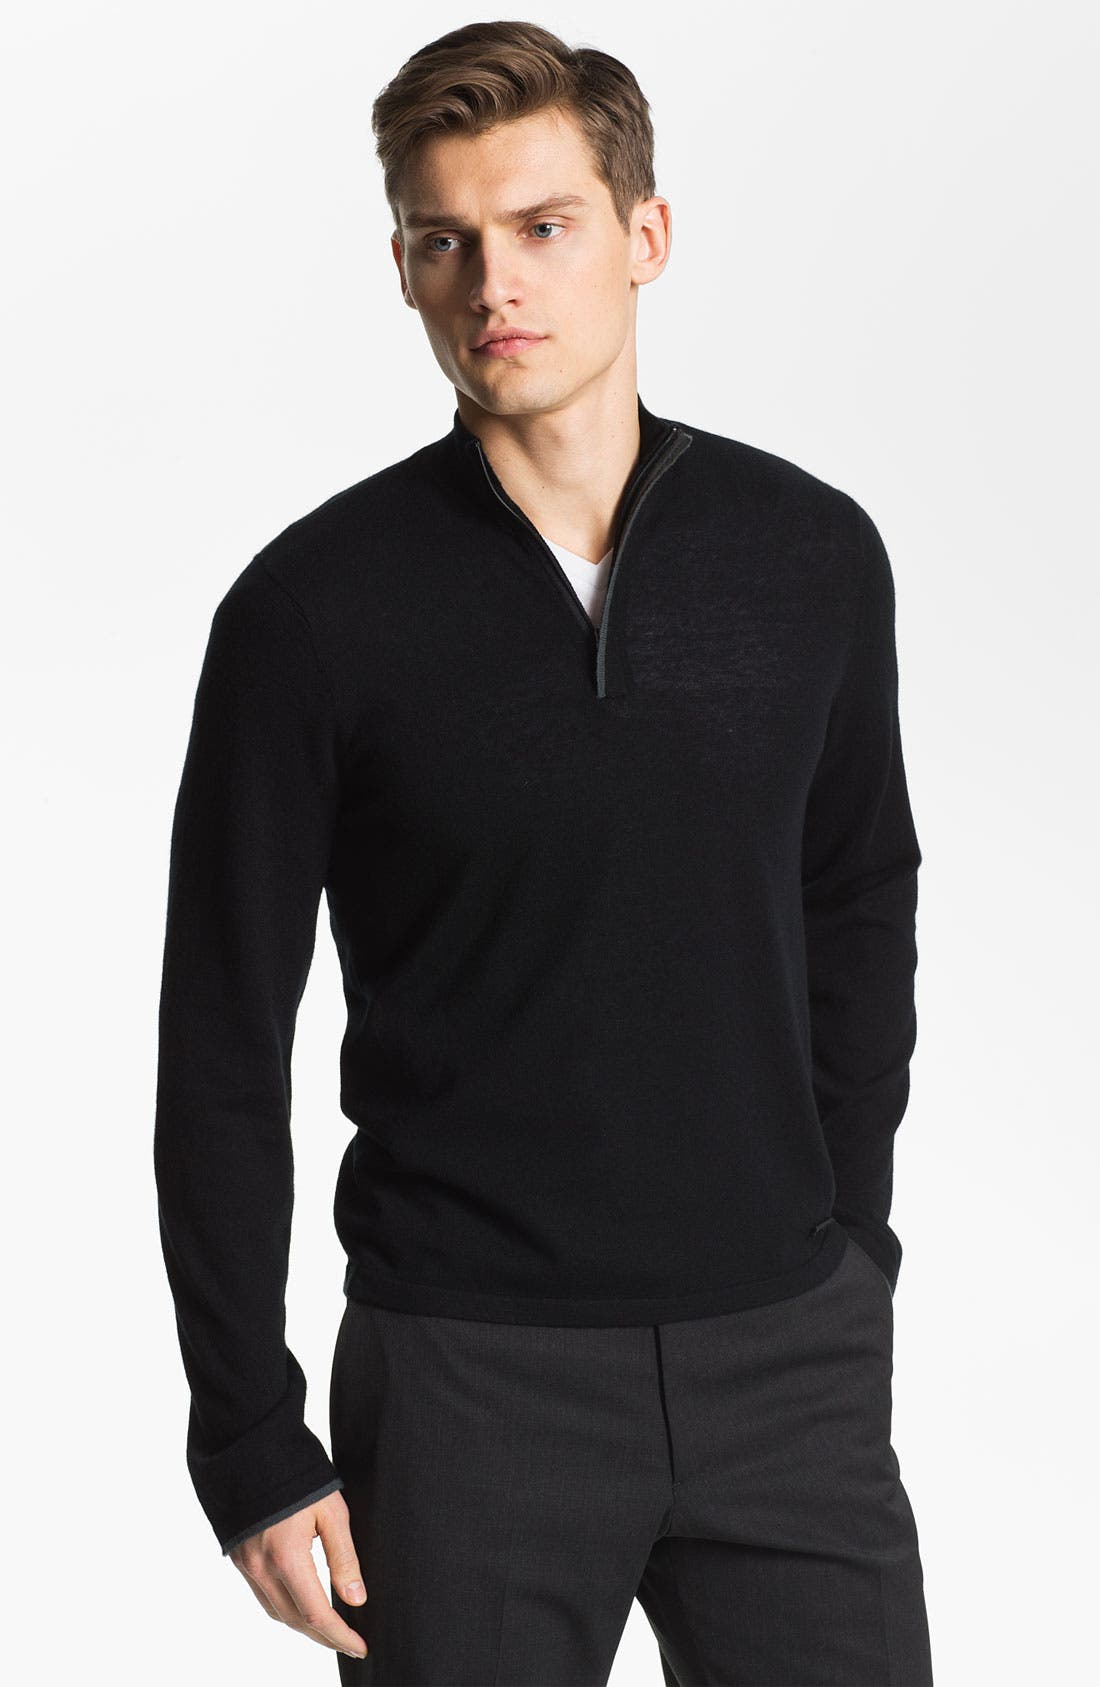 Alternate Image 1 Selected - Armani Collezioni Quarter Zip Cashmere Sweater